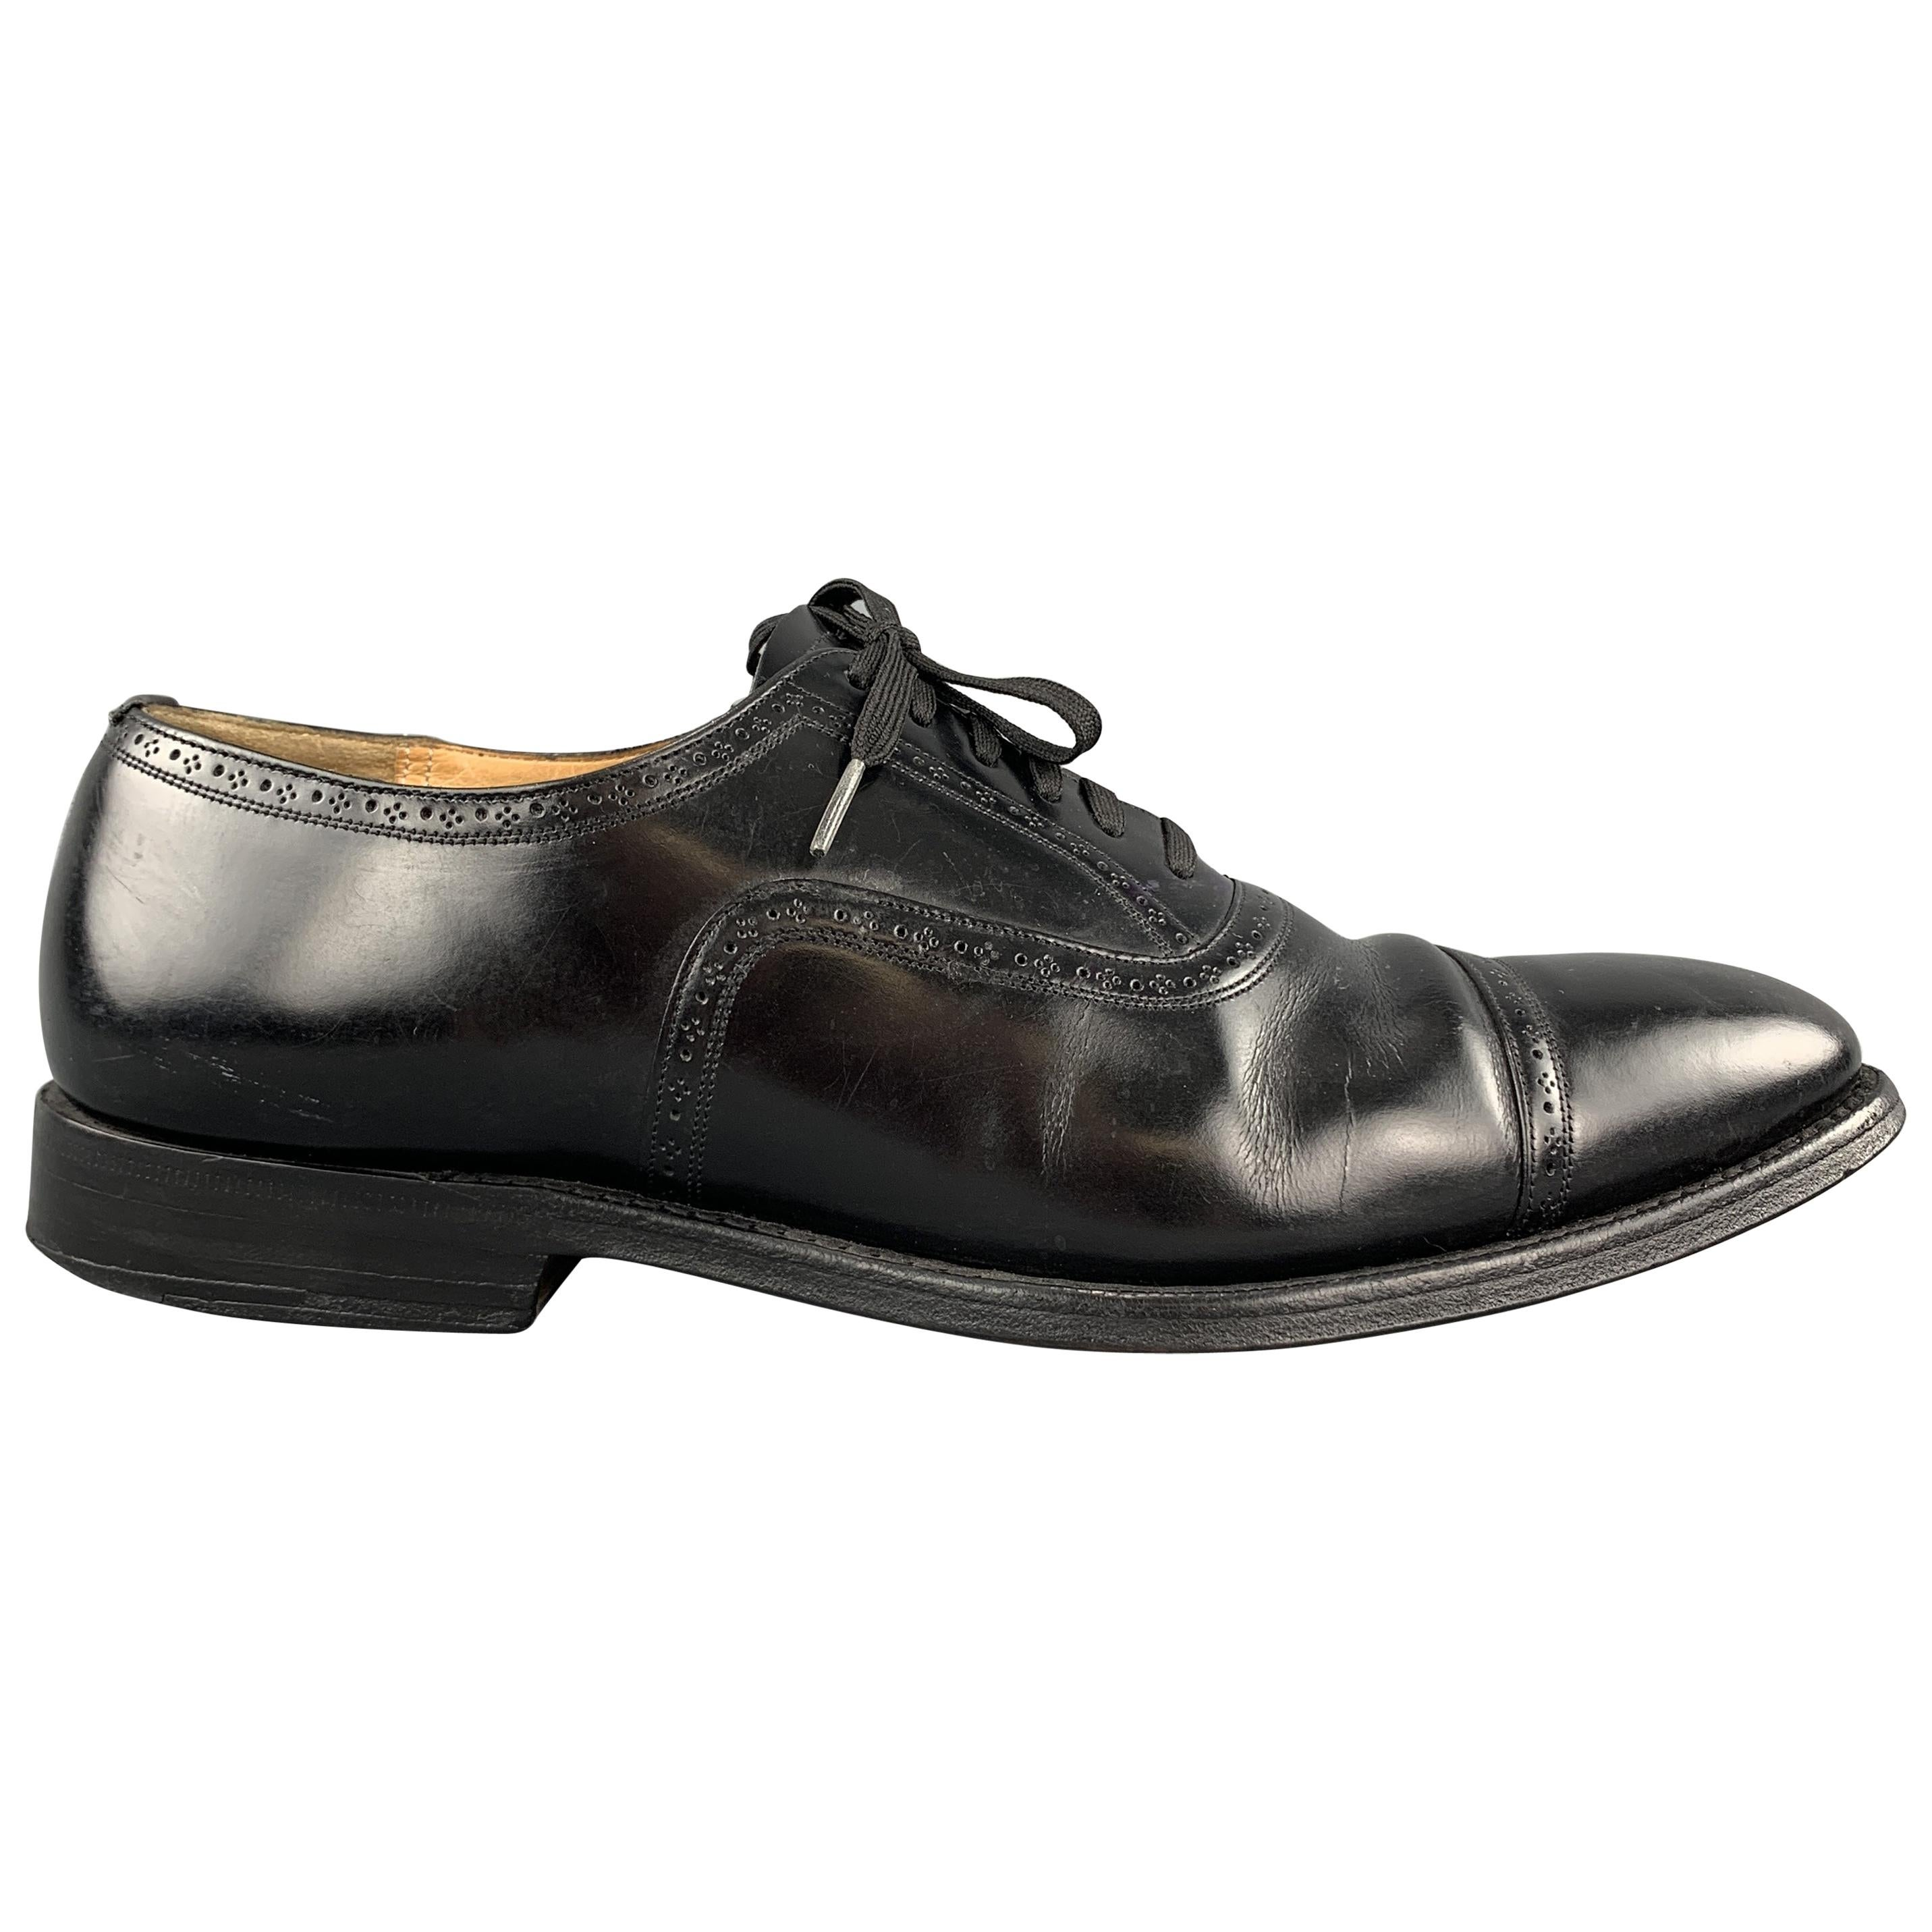 CHURCH'S Size 8.5 Black Perforated Leather Lace Up